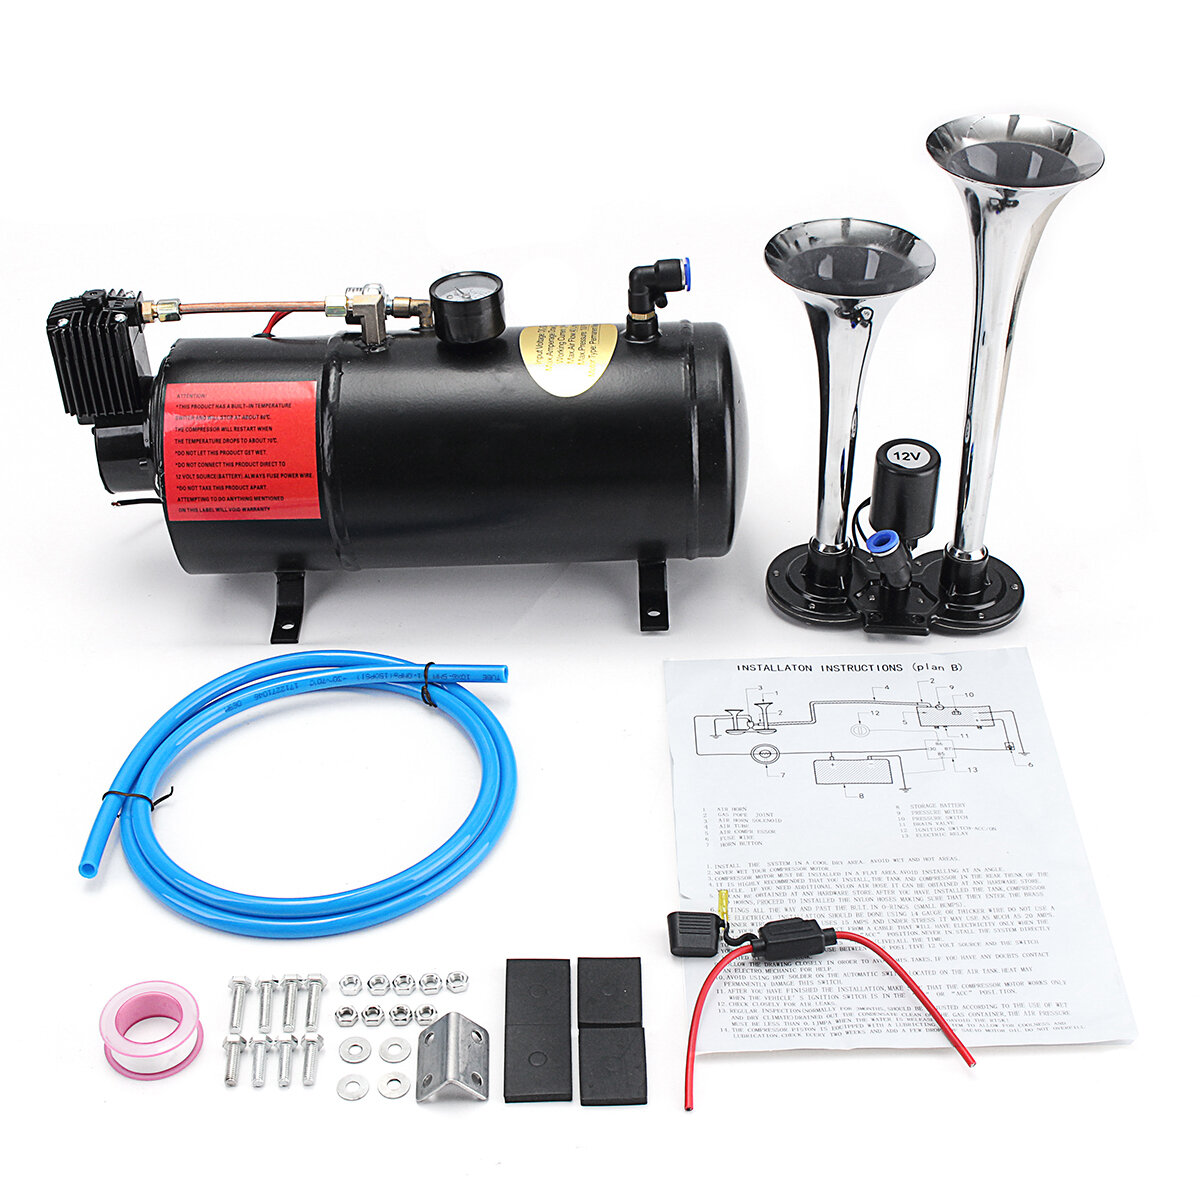 truck train 2 trumpet air horn kit loud dual 180 psi 12v 3l black air  compressor cod